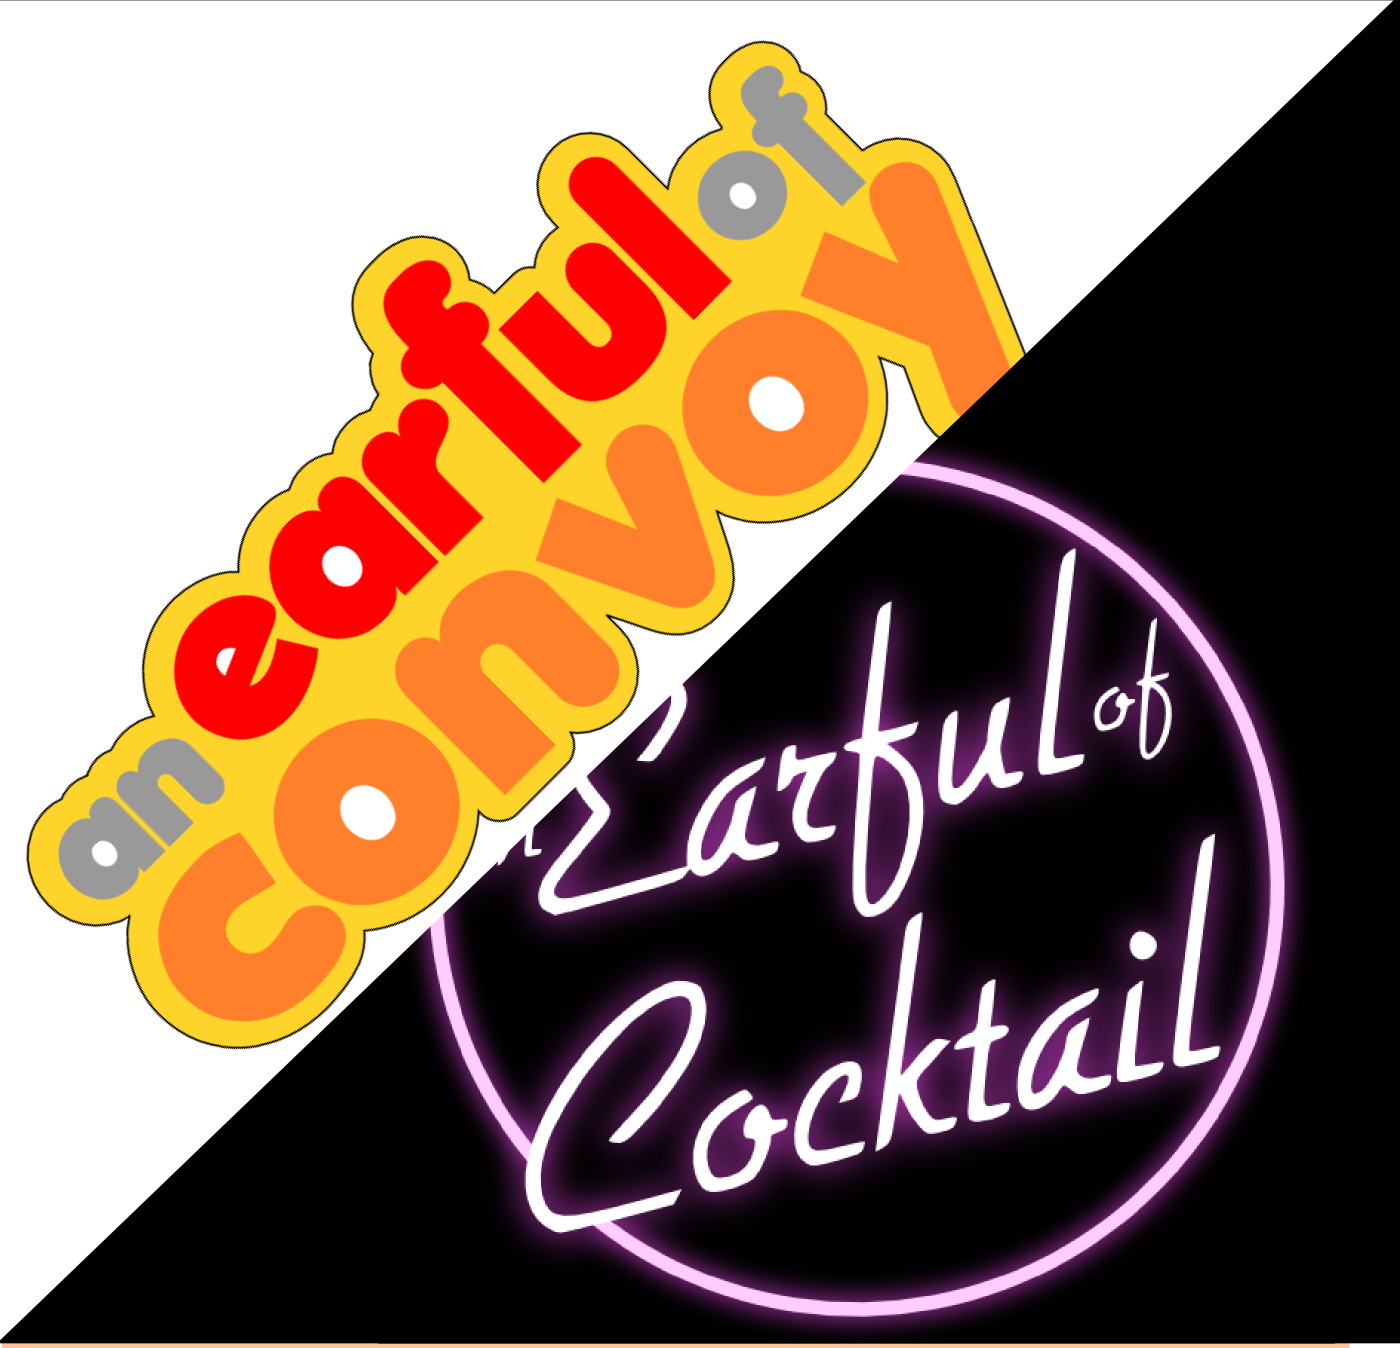 An Earful of Convoy/Cocktail